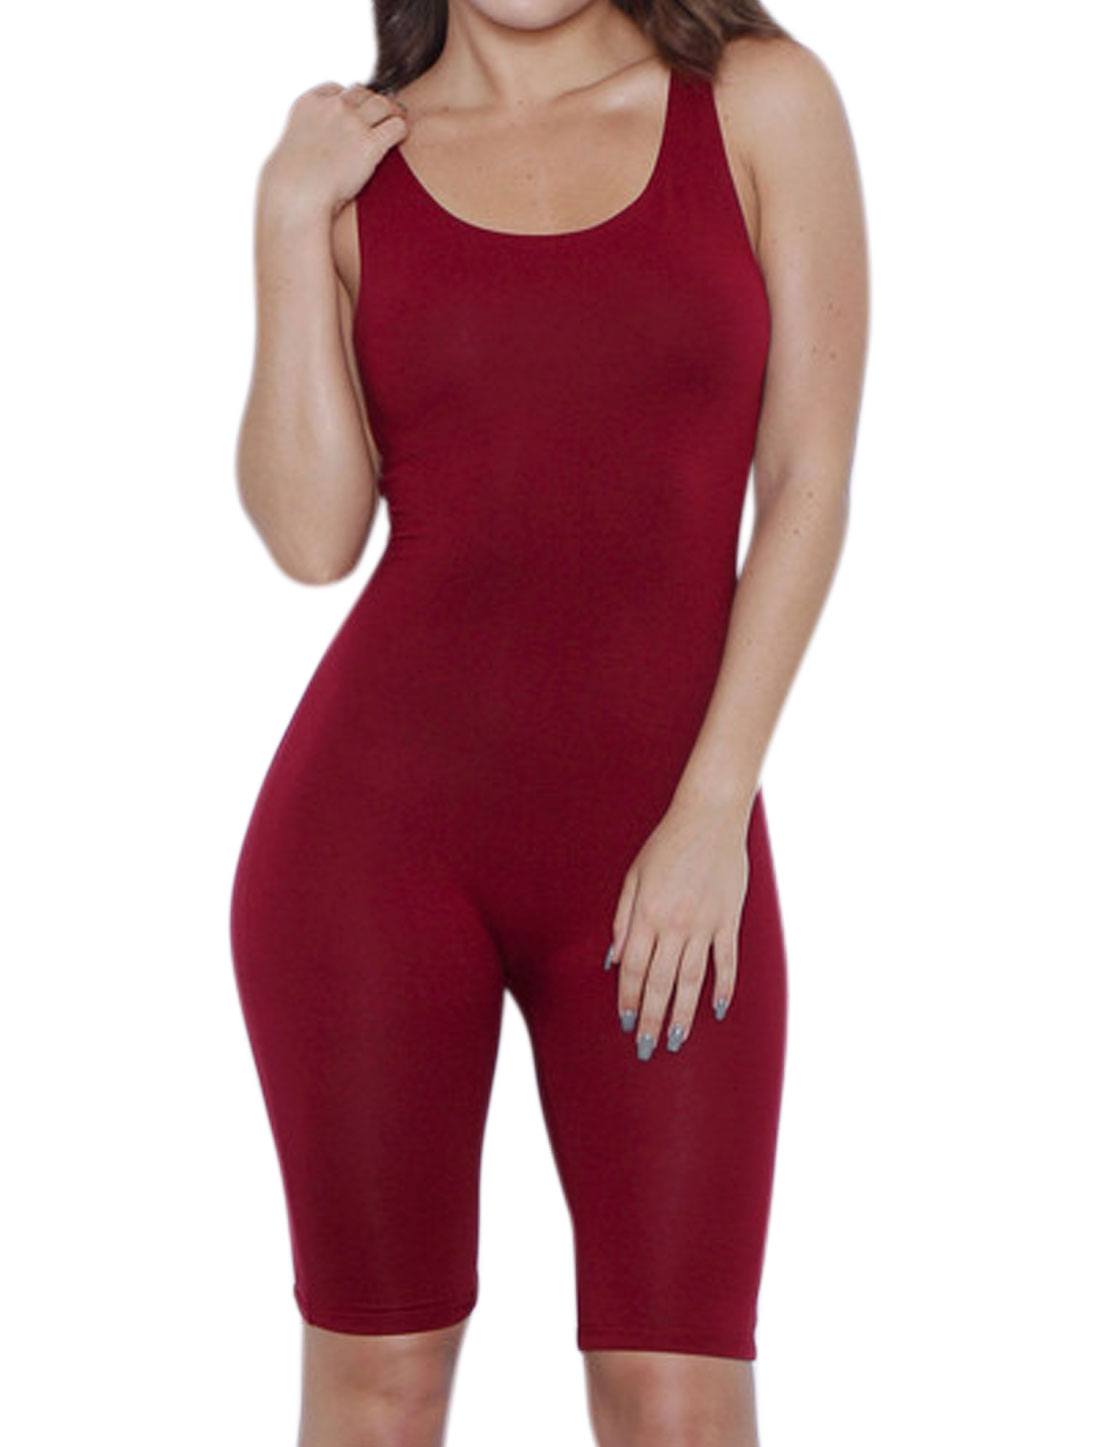 Women Scoop Neck Stretchy Knee Length Sport Romper Red L